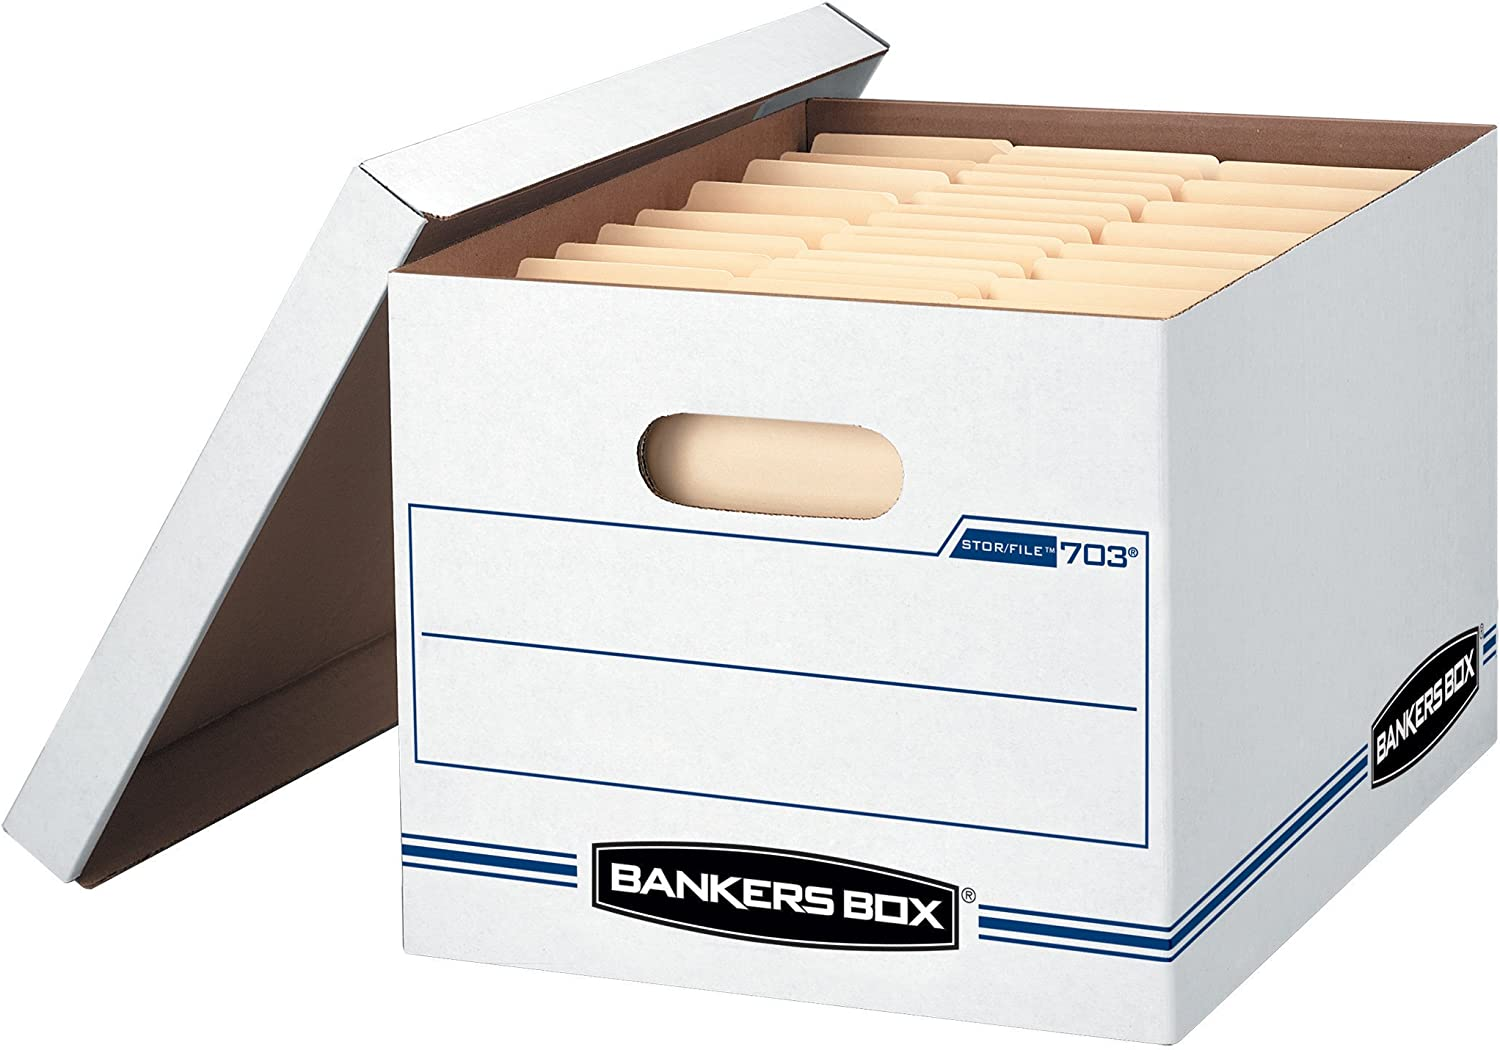 Bankers Box STOR/File Storage Boxes, Standard Set-Up, Lift-Off Lid, Letter/Legal, 4 Pack (0070308)